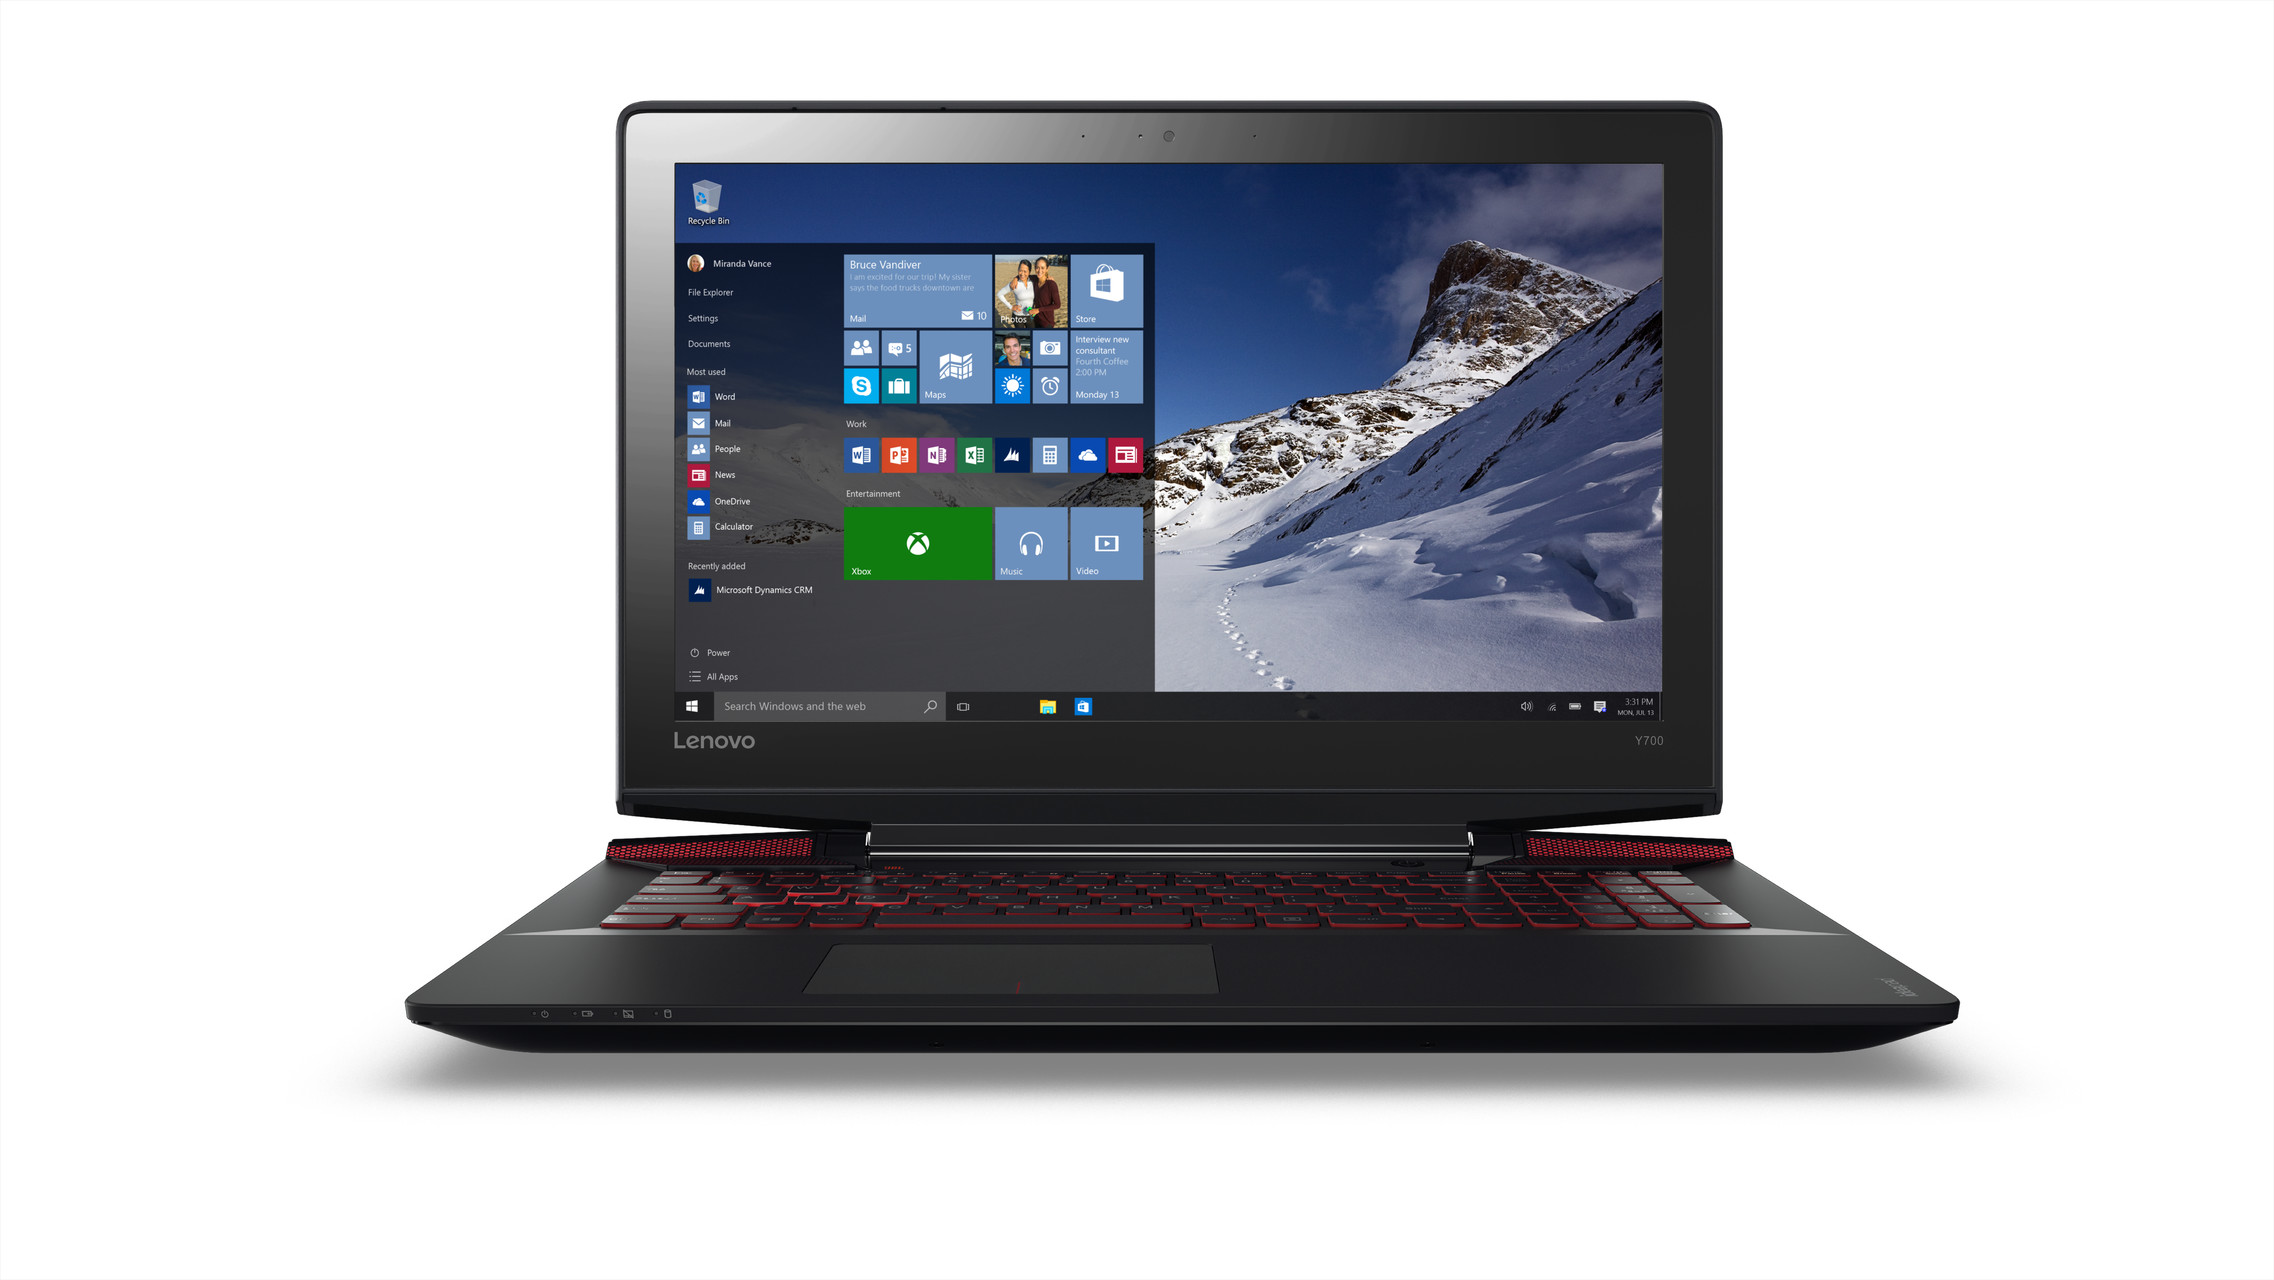 "Lenovo IdeaPad Y700 i5-6300HQ 3,20GHz/8GB/128GB SSD+1TB HDD/15,6"" FHD/IPS/AG/GeForce 4GB/3DCAM/WIN10 černá 80NV00VUCK"